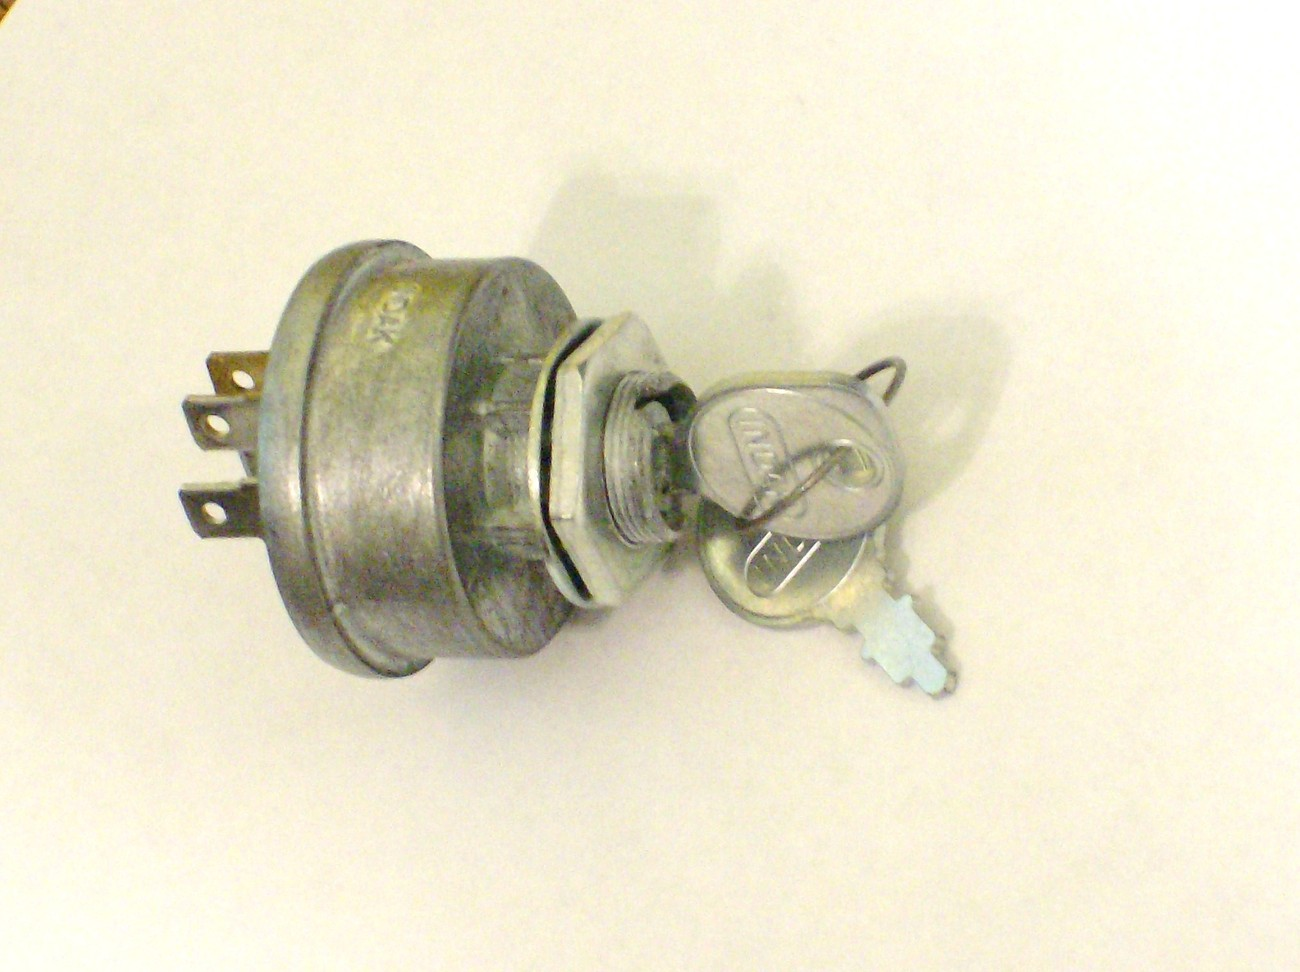 Mtd Garden Tractor Ignition Switch : Mtd lawn mower ignition starter switch